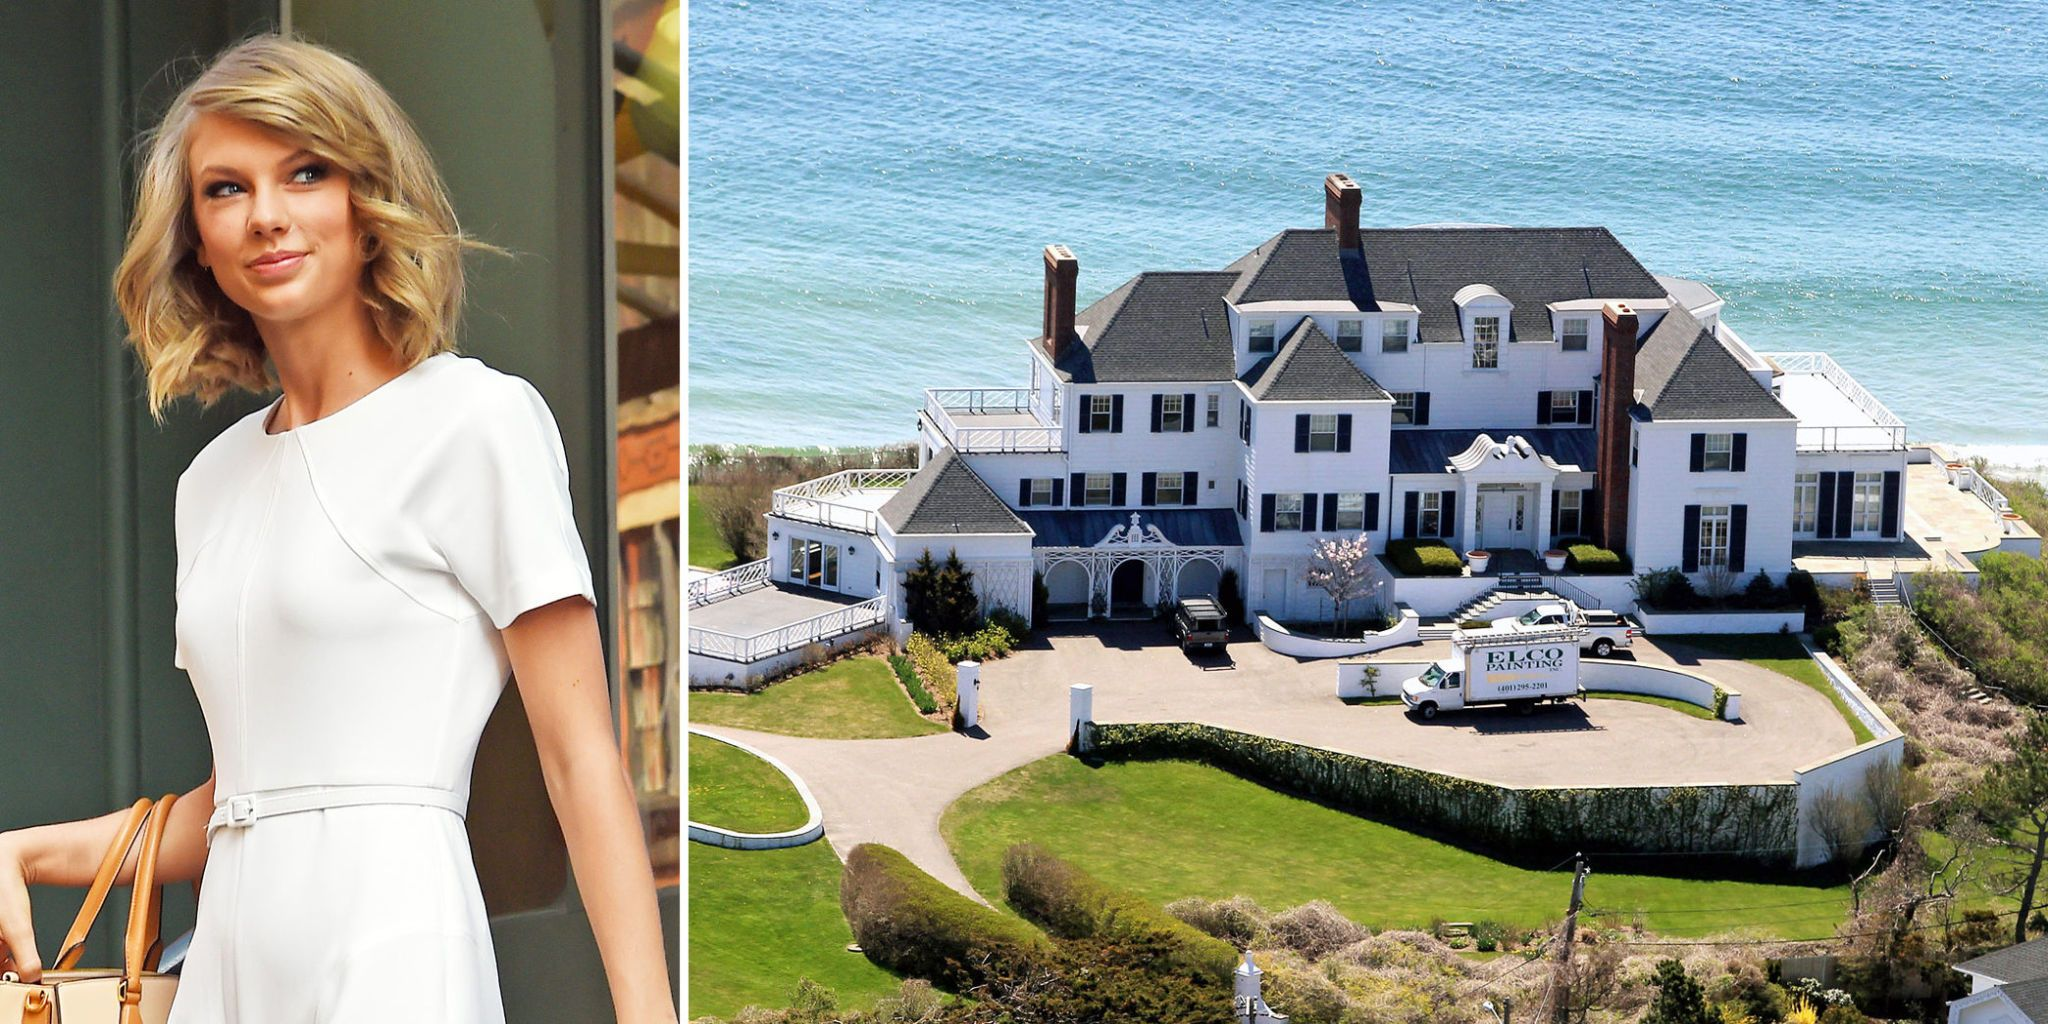 10 Things You Didn't Know About Taylor Swift's Rhode Island Mansion